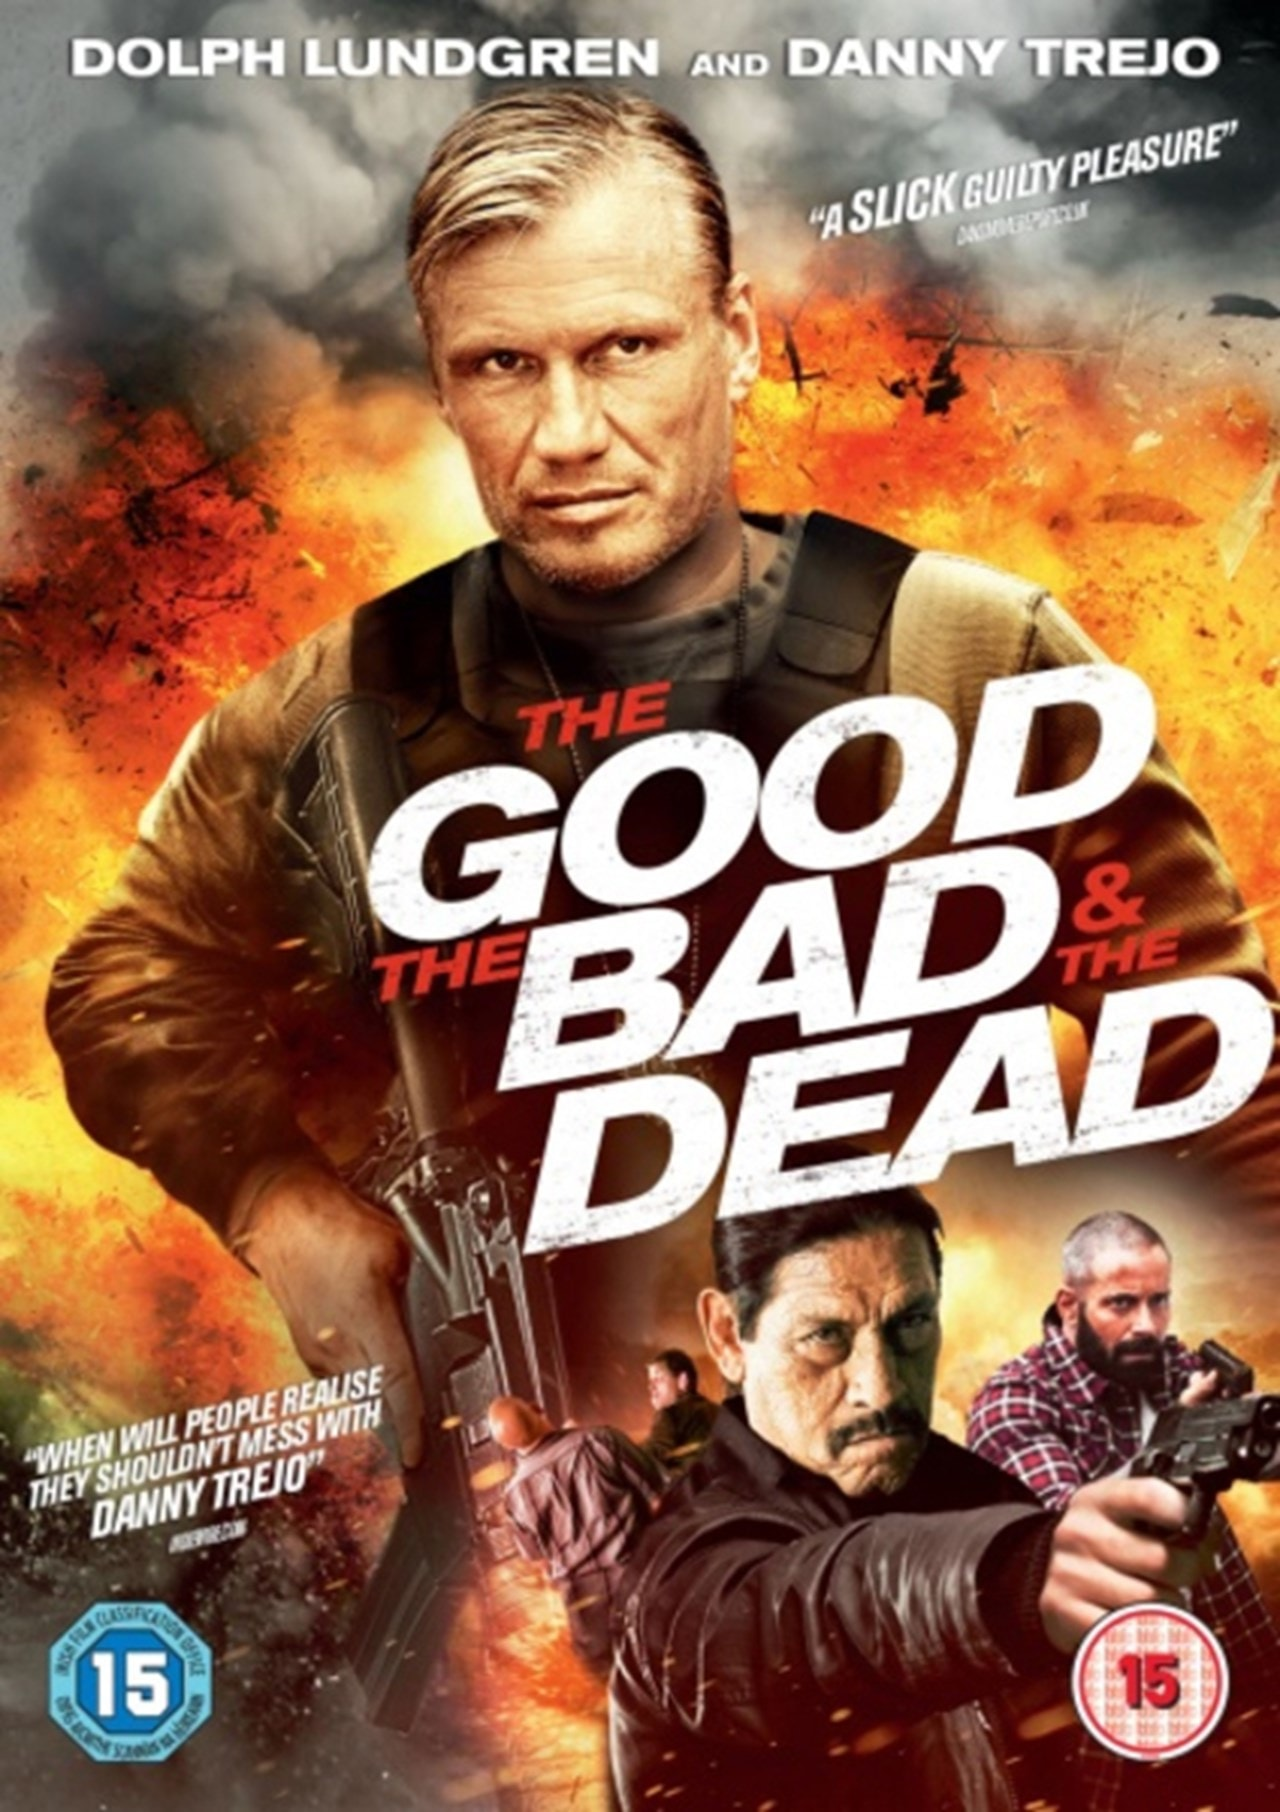 The Good, the Bad & the Dead - 1